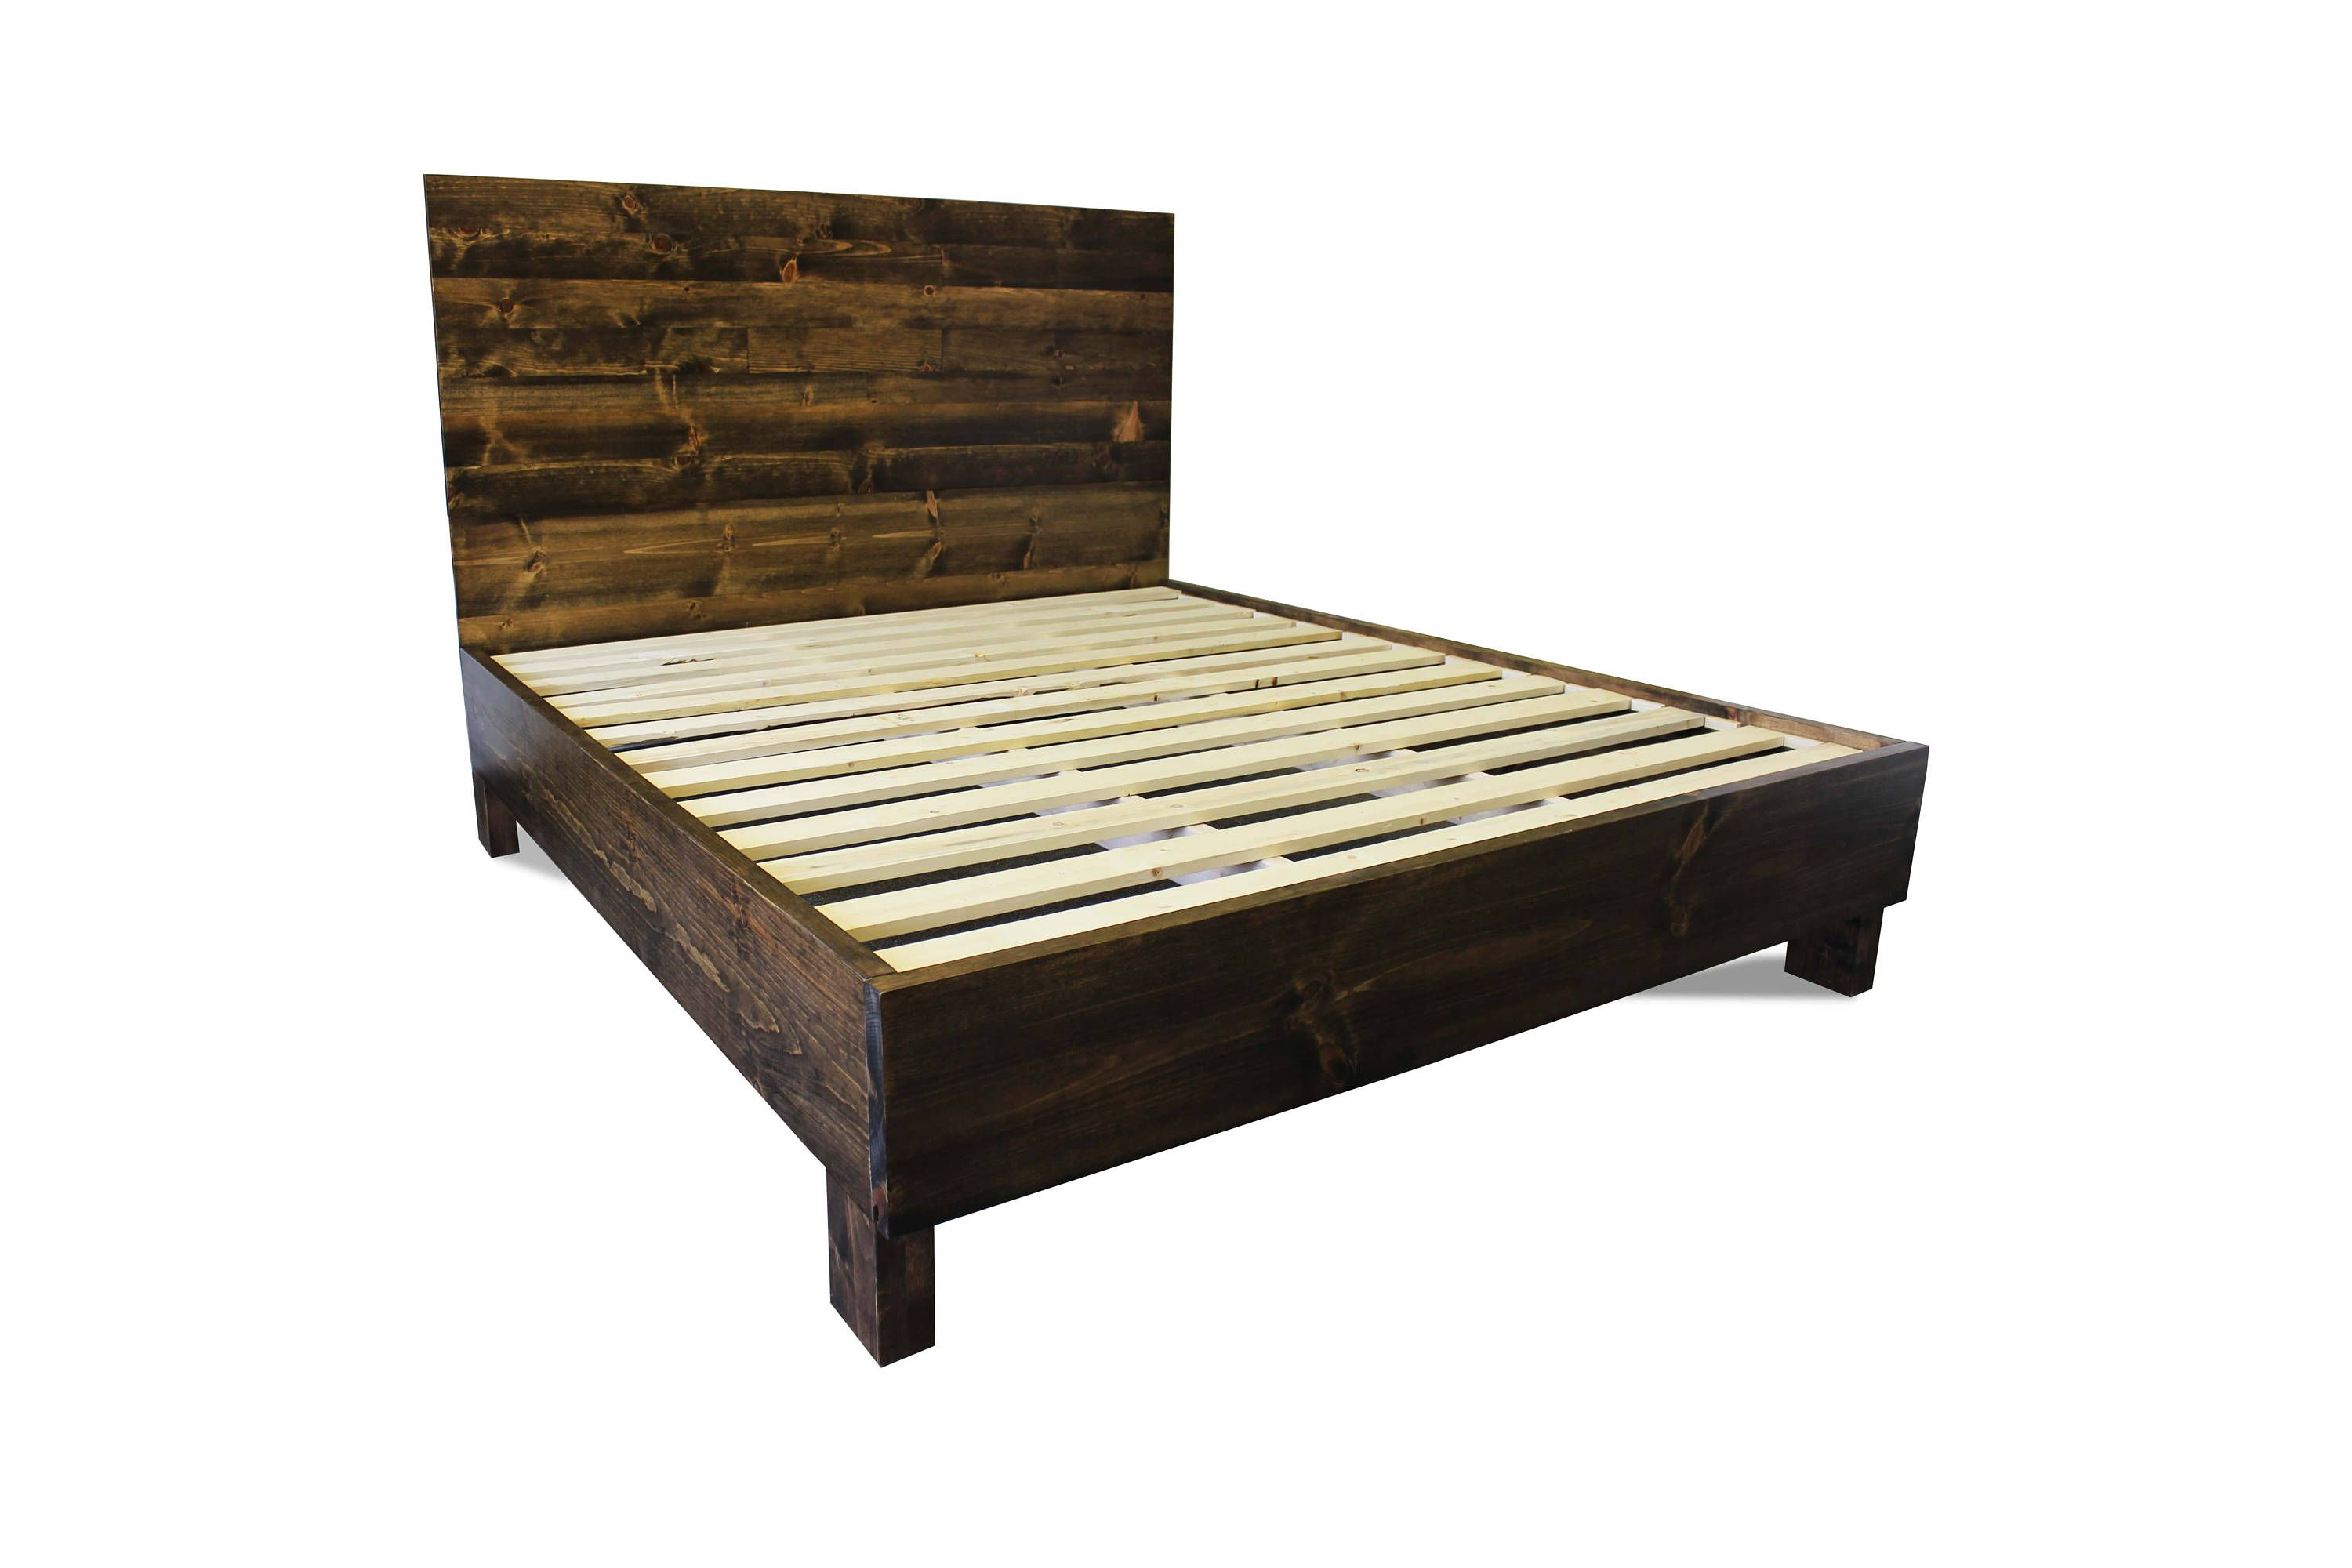 Rustic Solid Wood Platform Bed Frame Headboard Reclaimed Wood